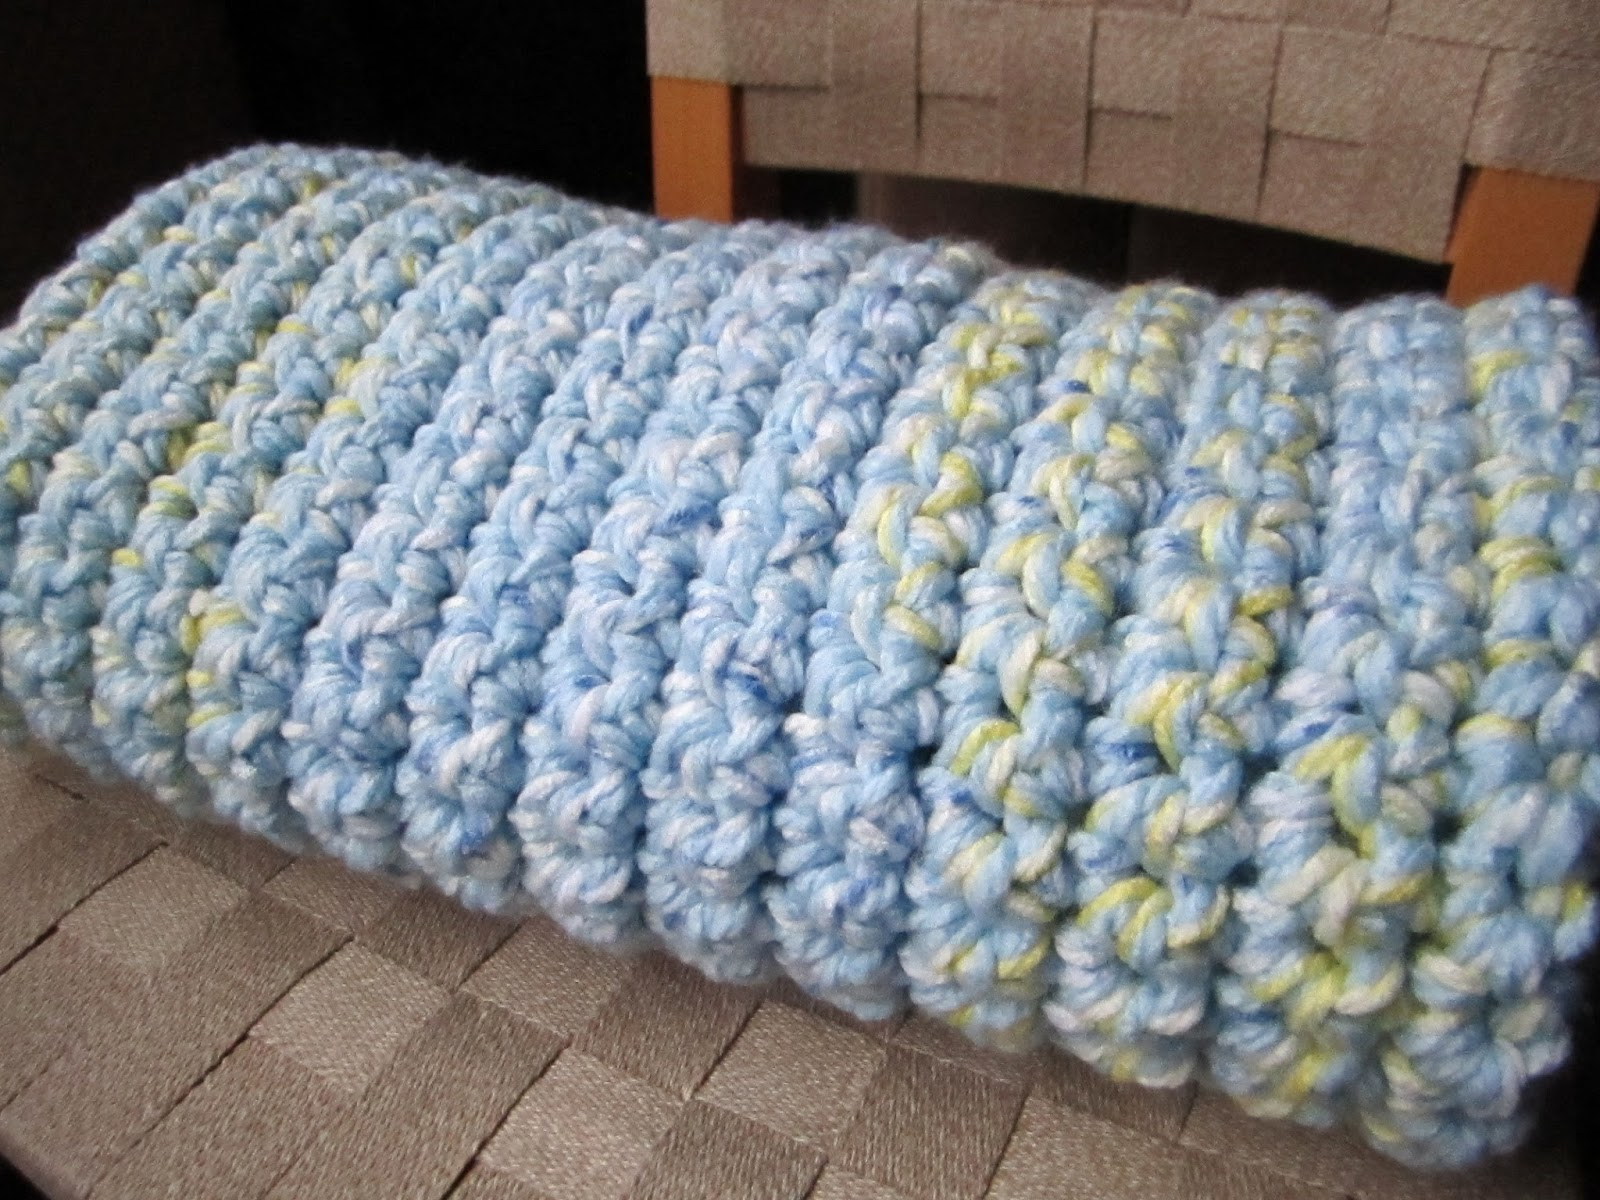 Free Crochet Patterns For Baby Sport Yarn : Inspire Me Grey: Two Easy Crochet Baby Blankets